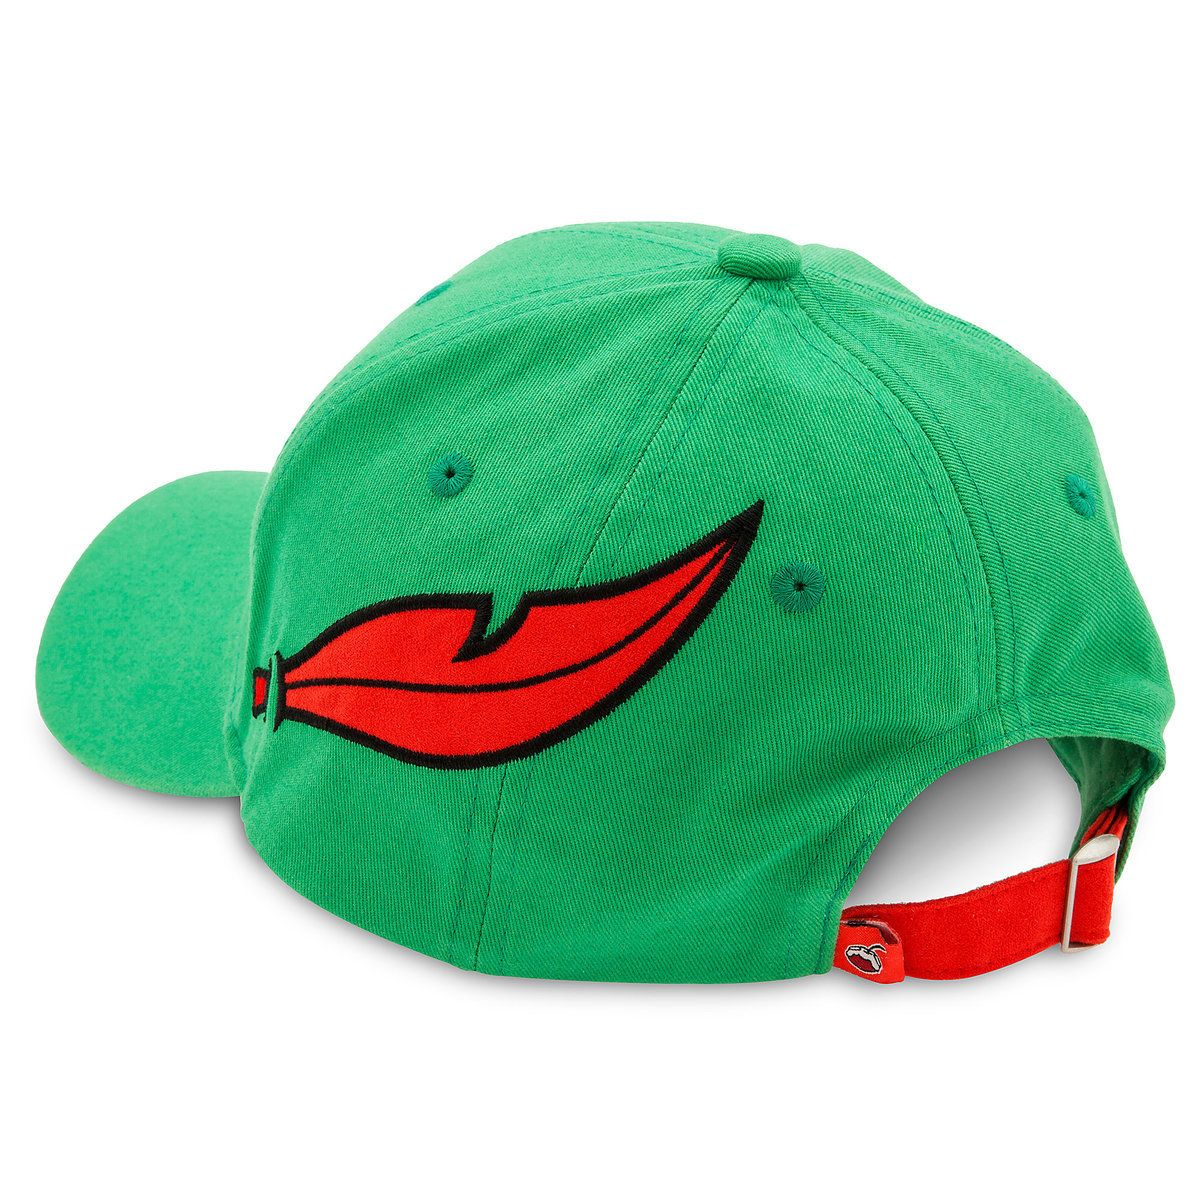 ea4c06bc2a9 Peter Pan Baseball Cap for Adults by Cakeworthy